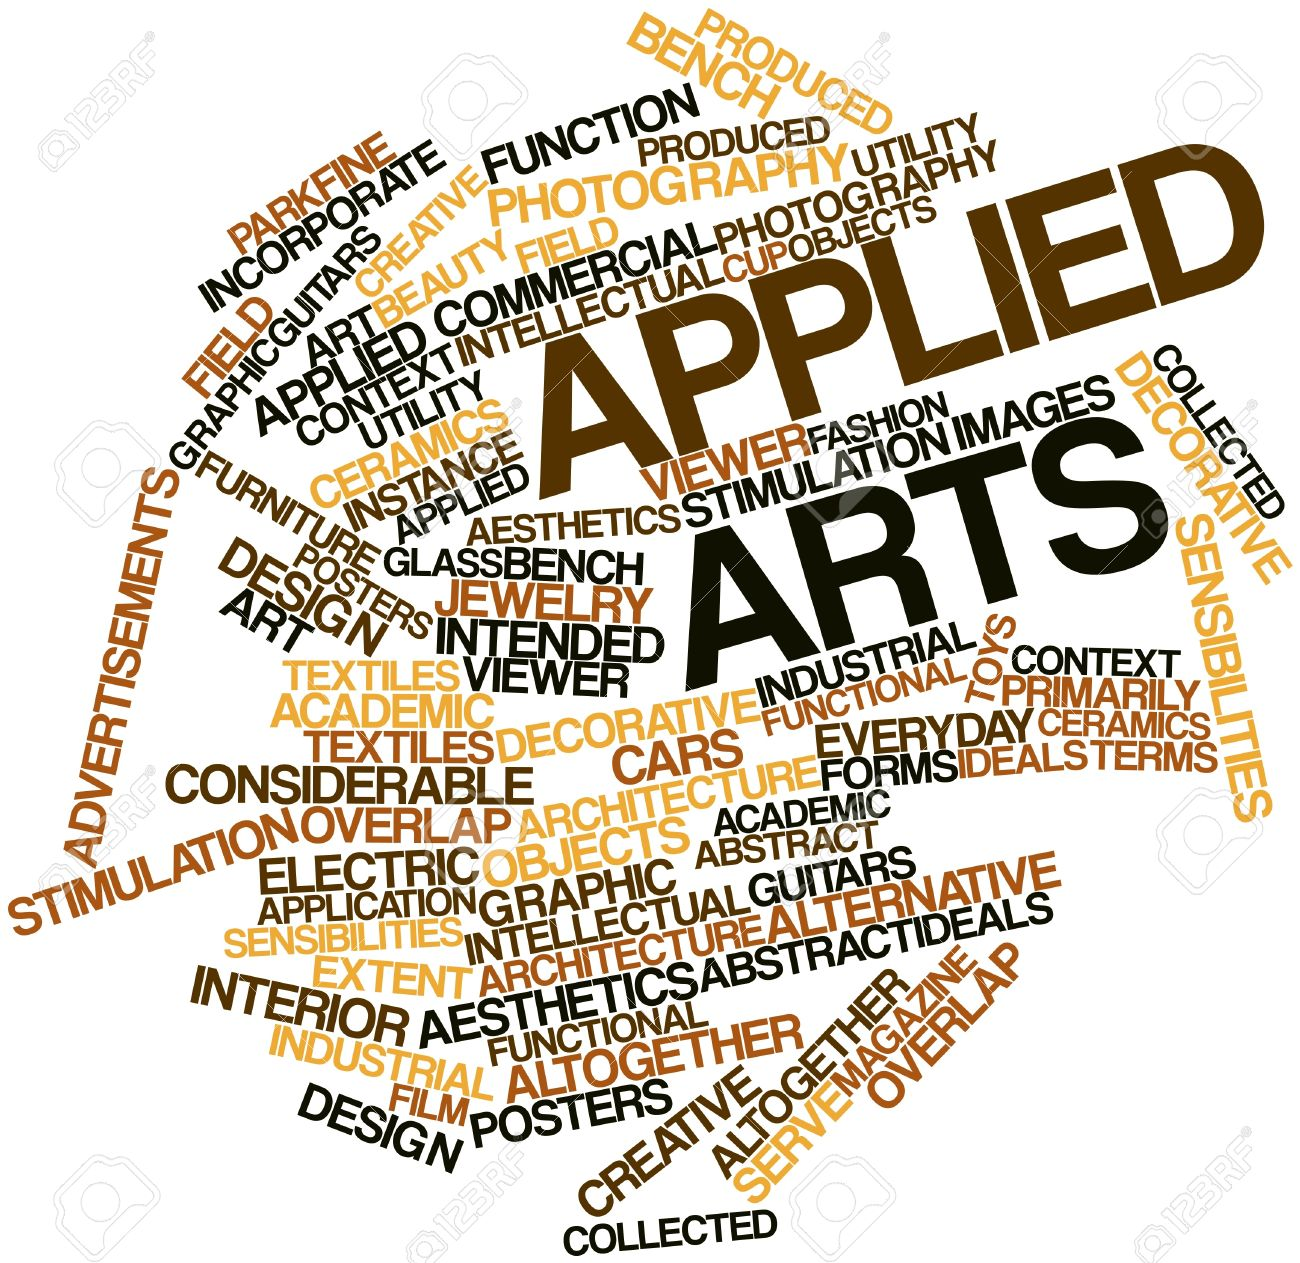 Abstract Word Cloud For Applied Arts With Related Tags And Terms.